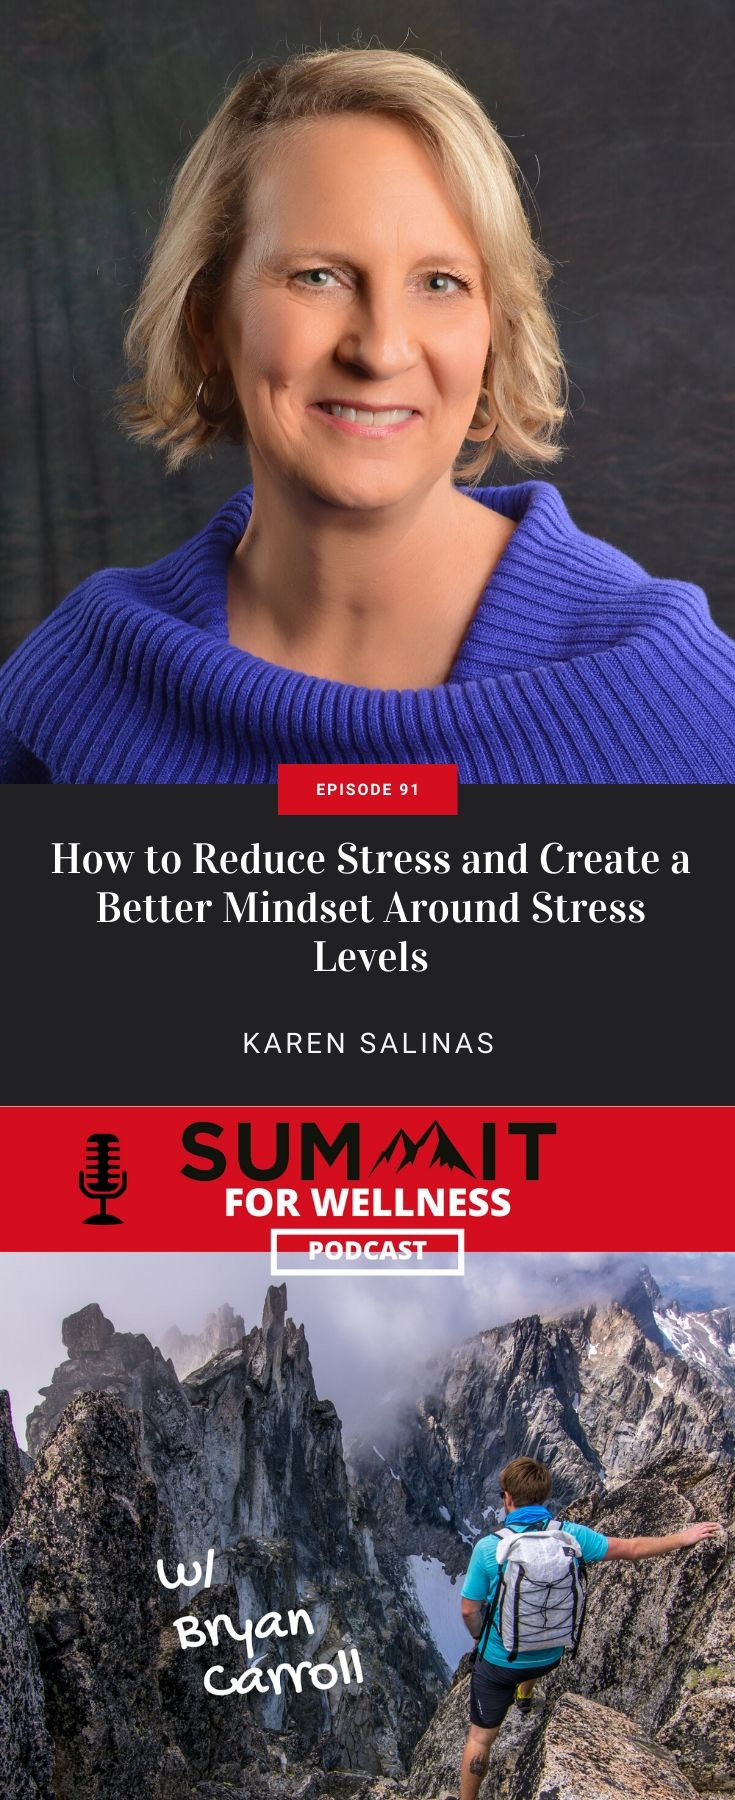 Karen Salinas teaches how to change your mindset around stress and to take care of your stress levels first.